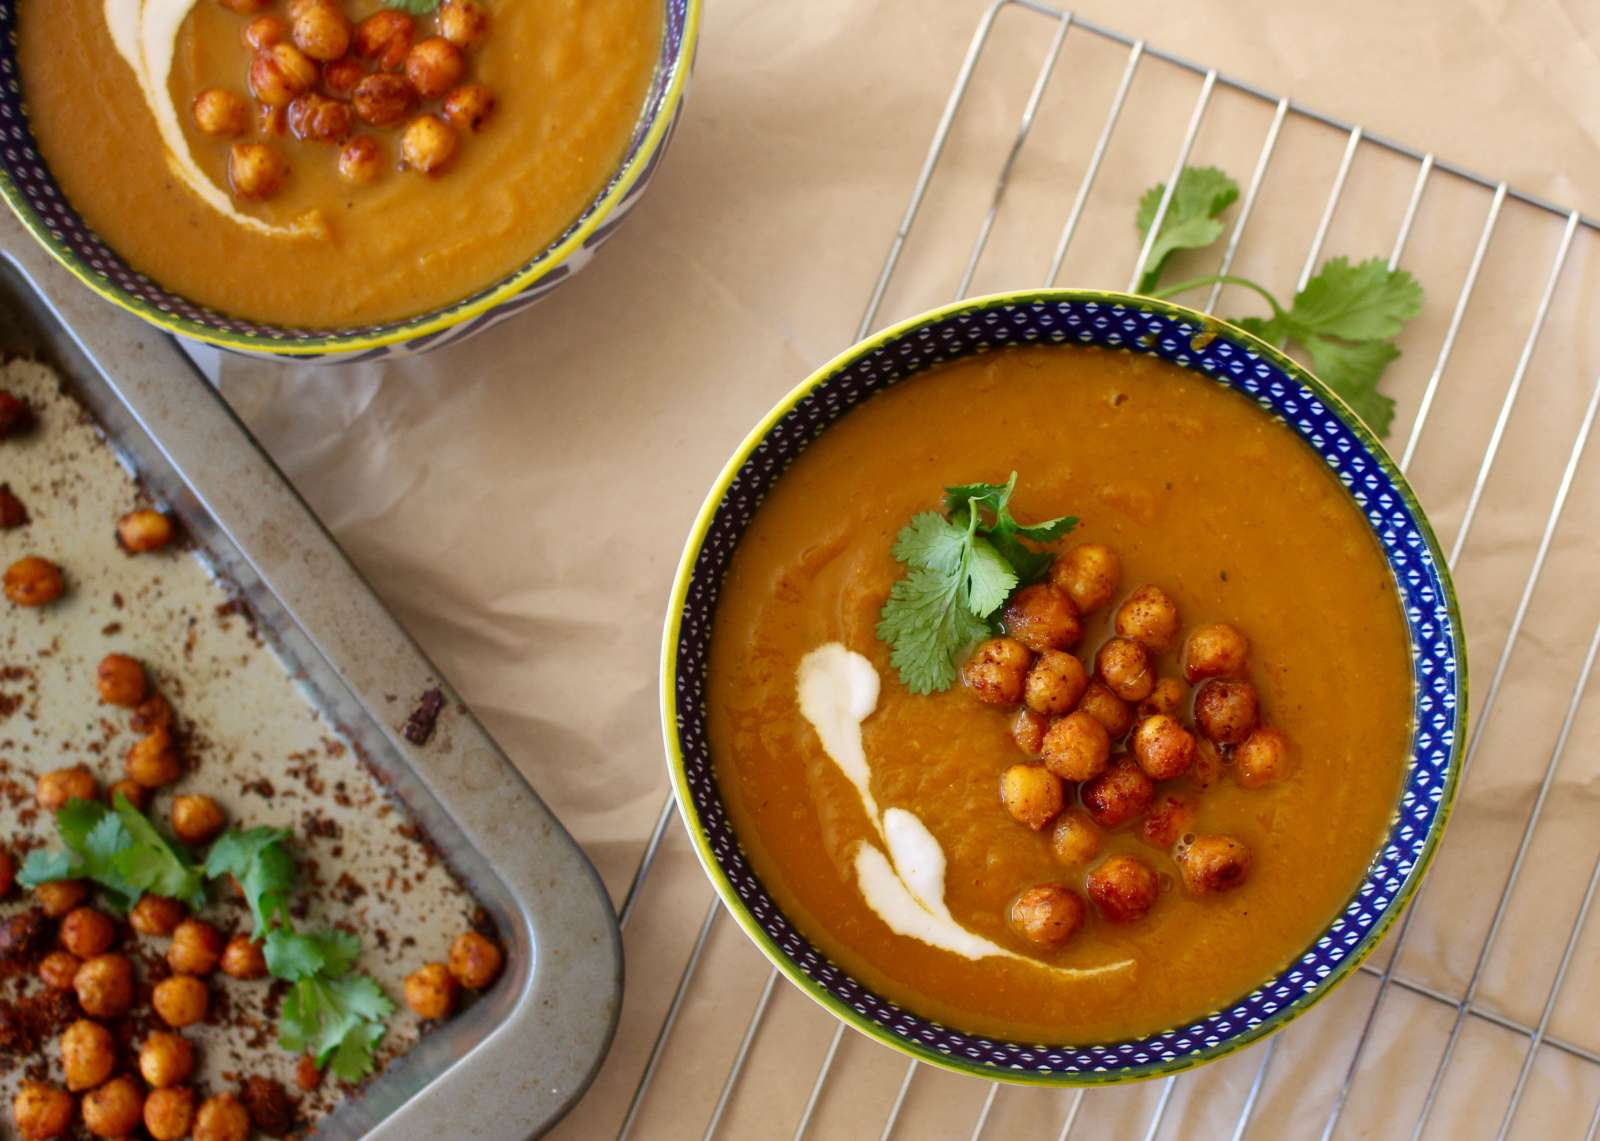 Apple Carrot Sweet Potato Soup With Garam Masala Roasted Chickpeas Recipe